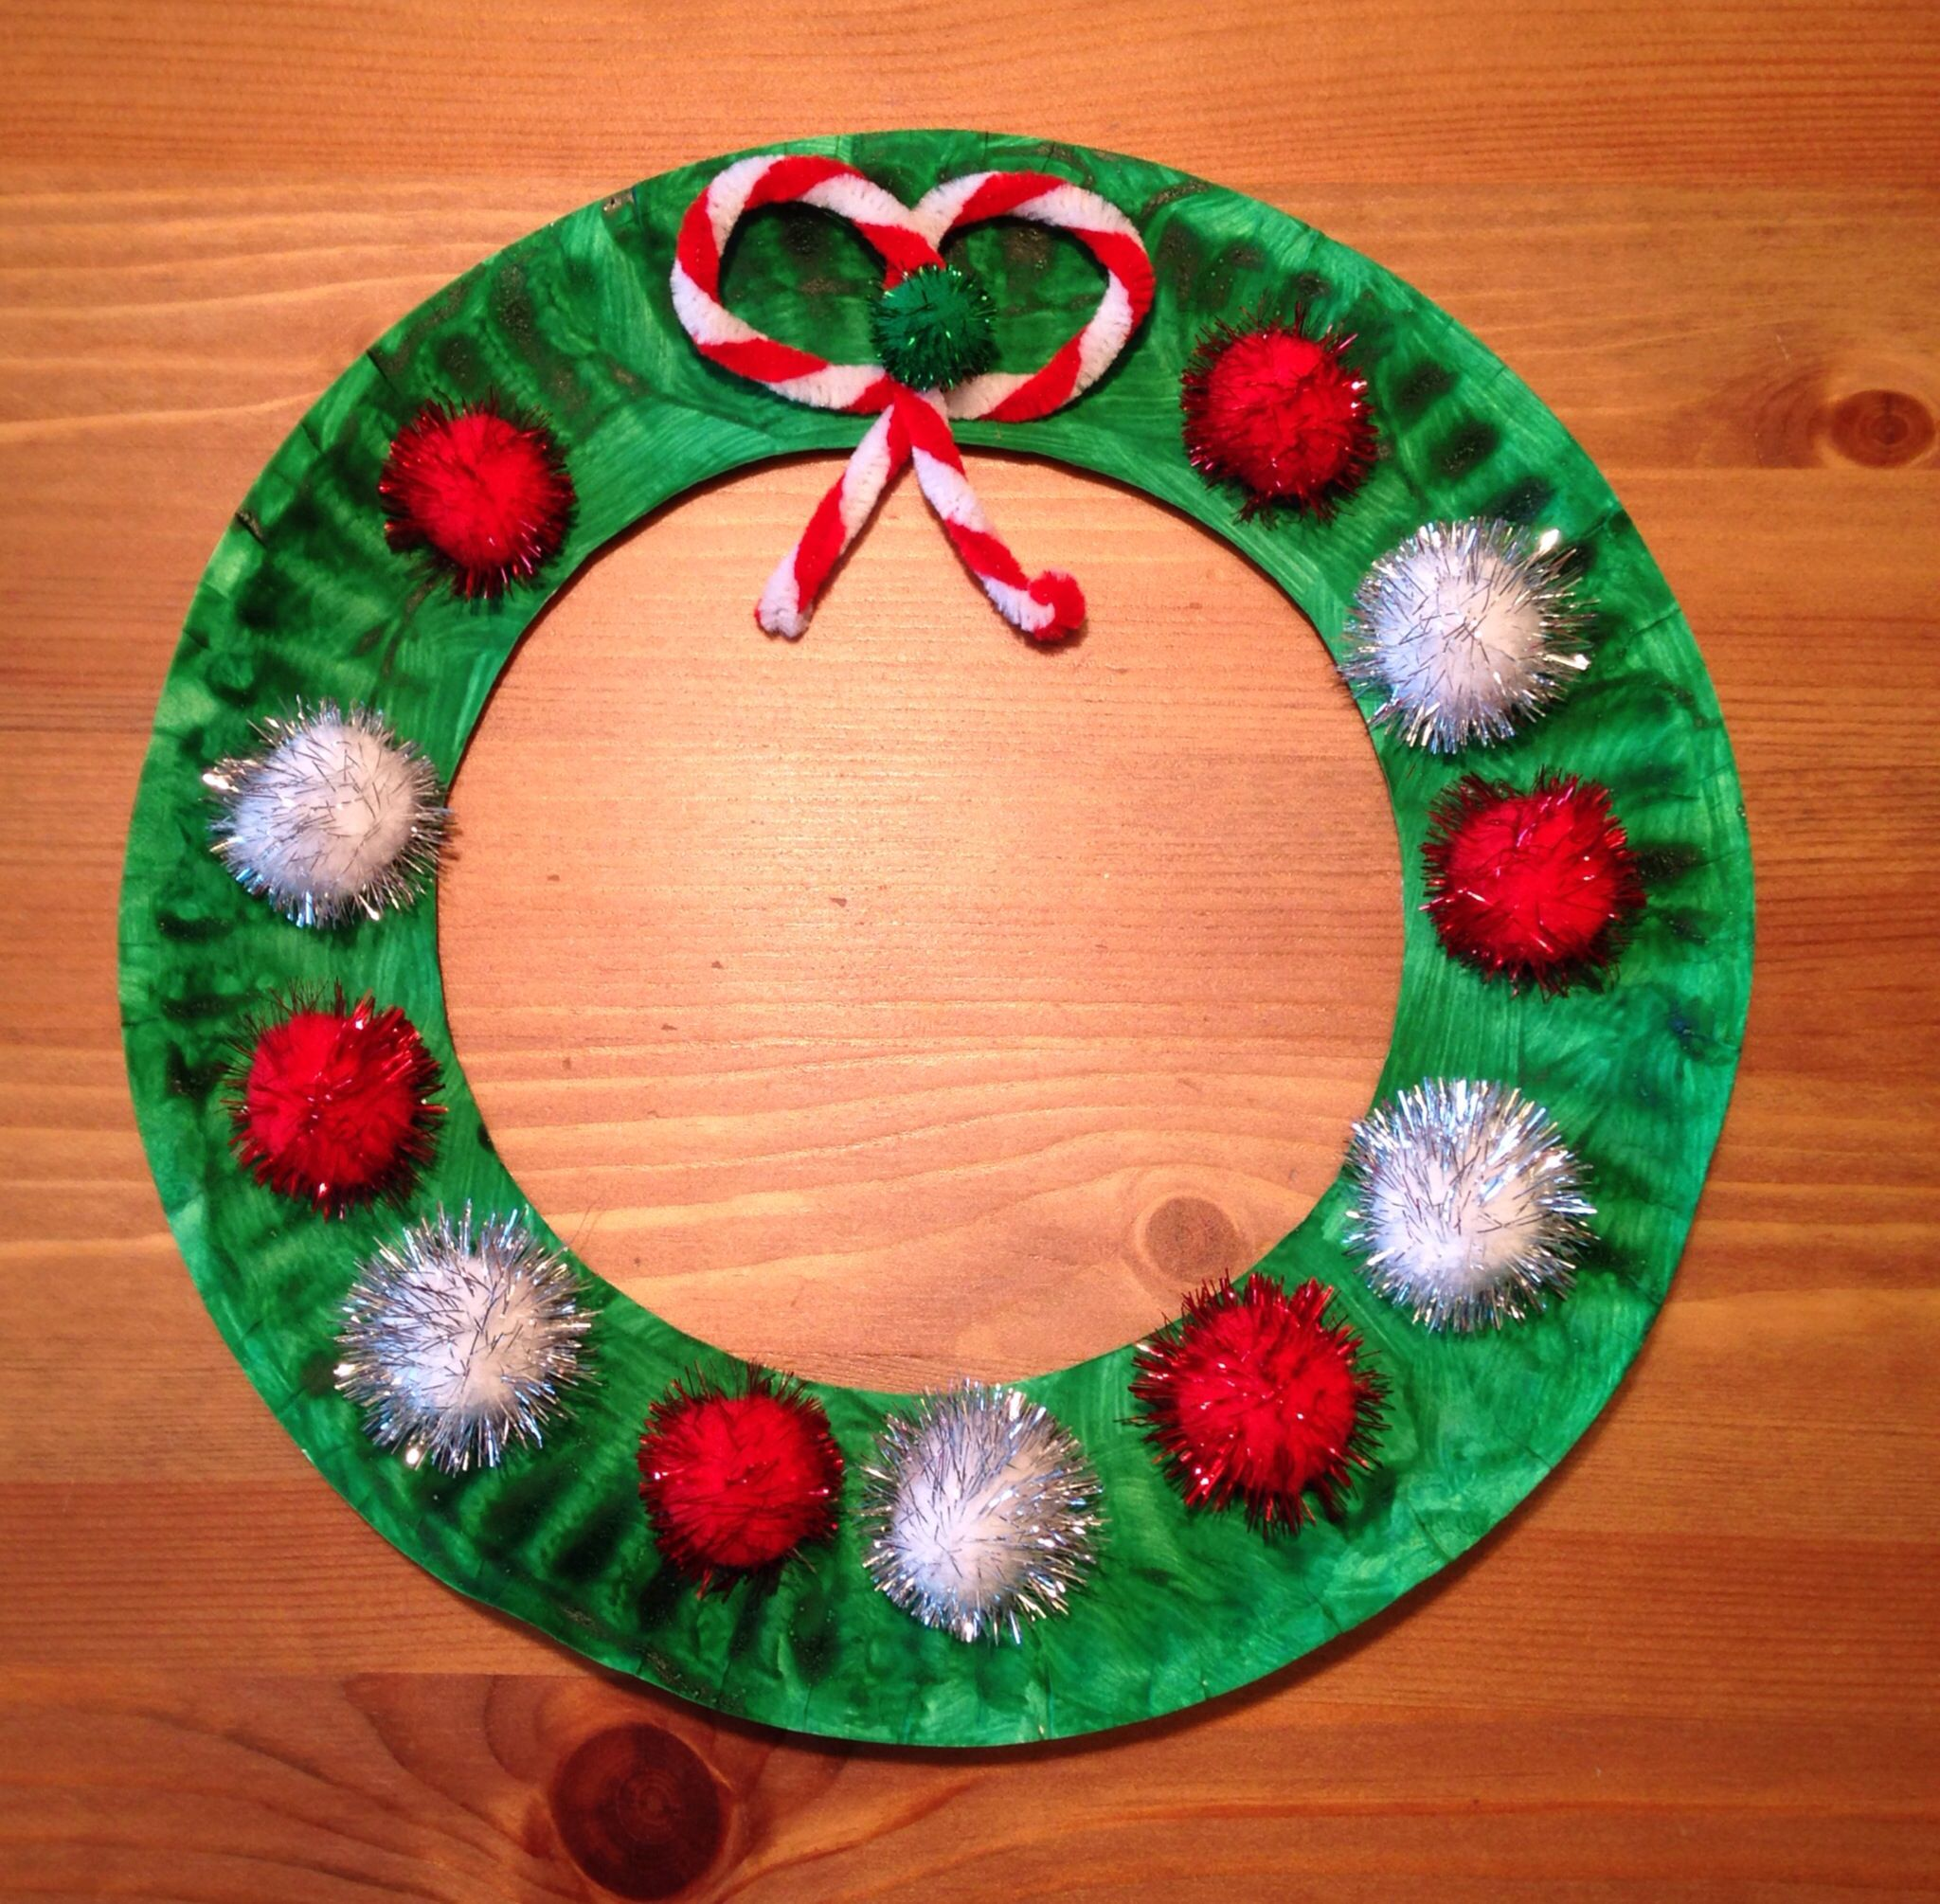 24 Christmas Gift Ideas. Wreaths CraftsXmas CraftsChristmas Crafts Paper PlatesChildrens ... & 24 Christmas Gift Ideas | Wreath crafts Paper plate crafts and Pipes